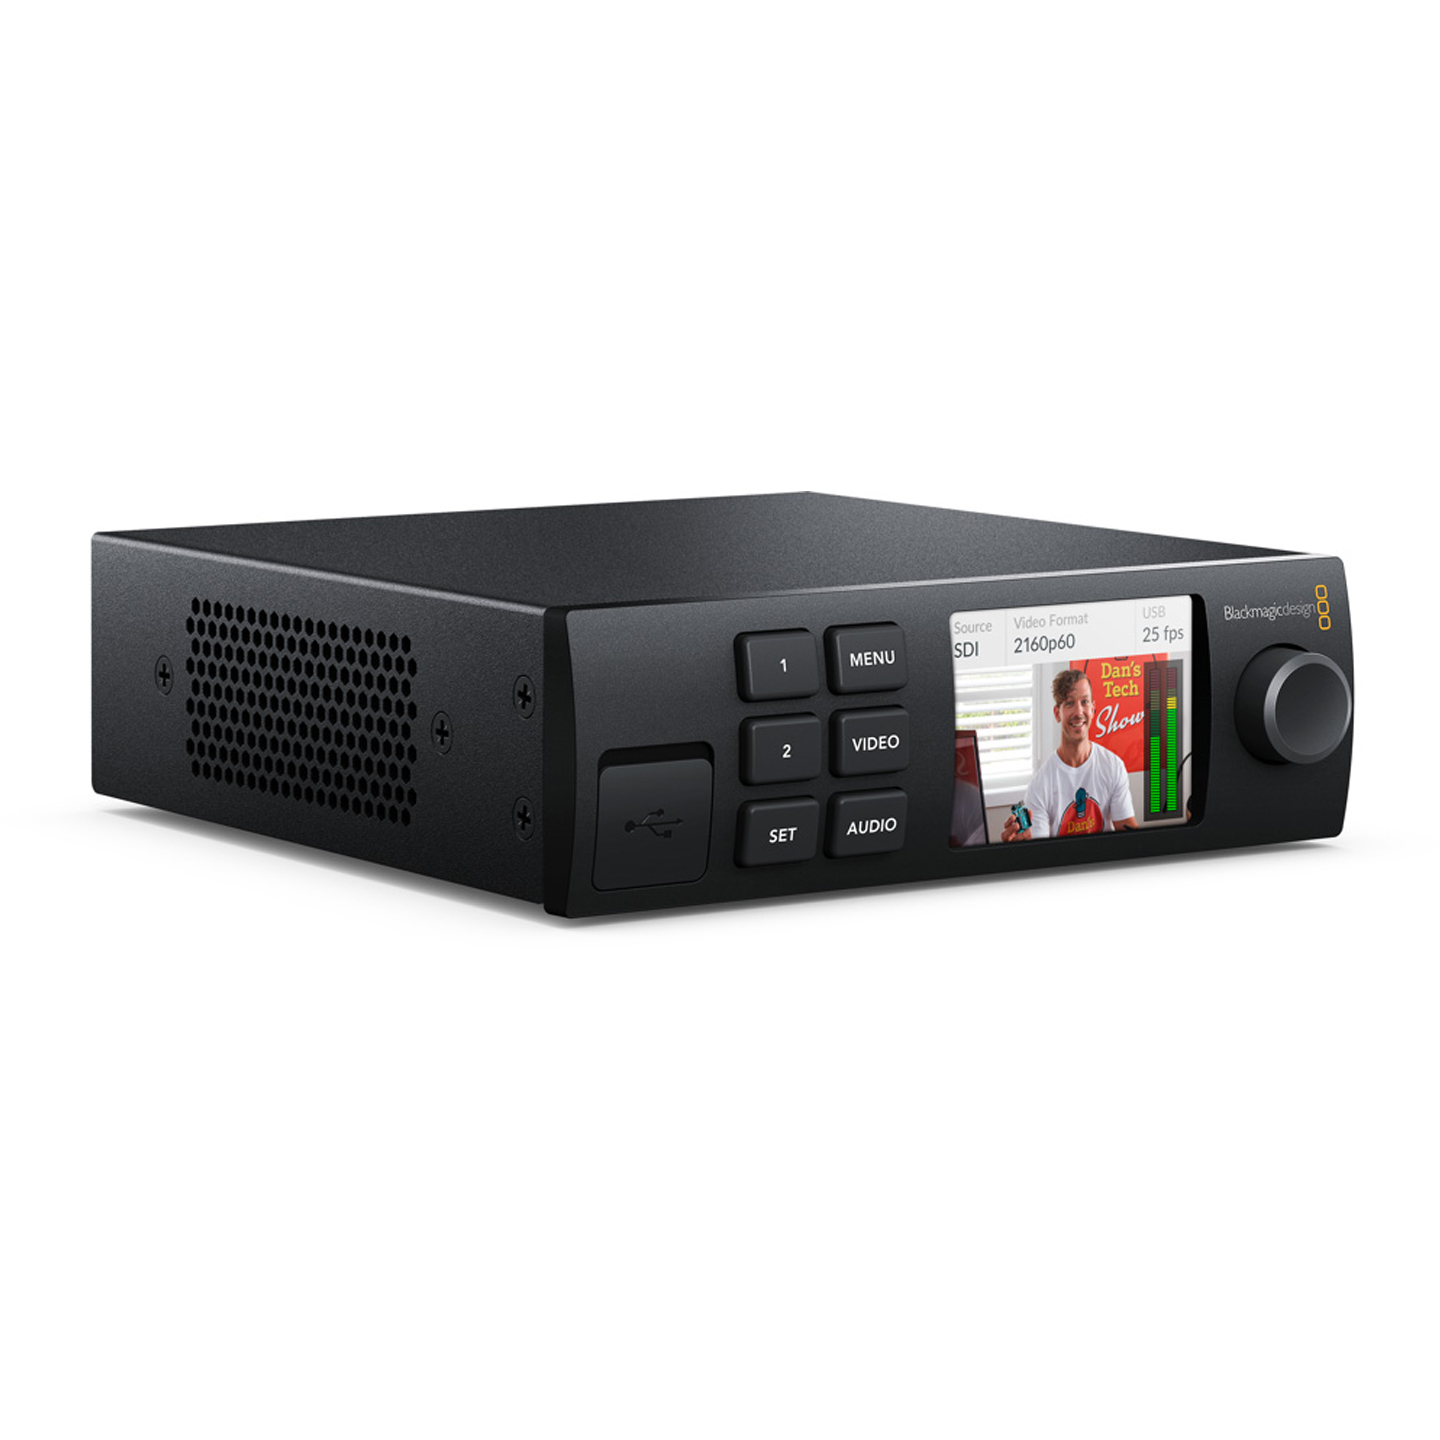 Blackmagic Design Web Presenter - Main